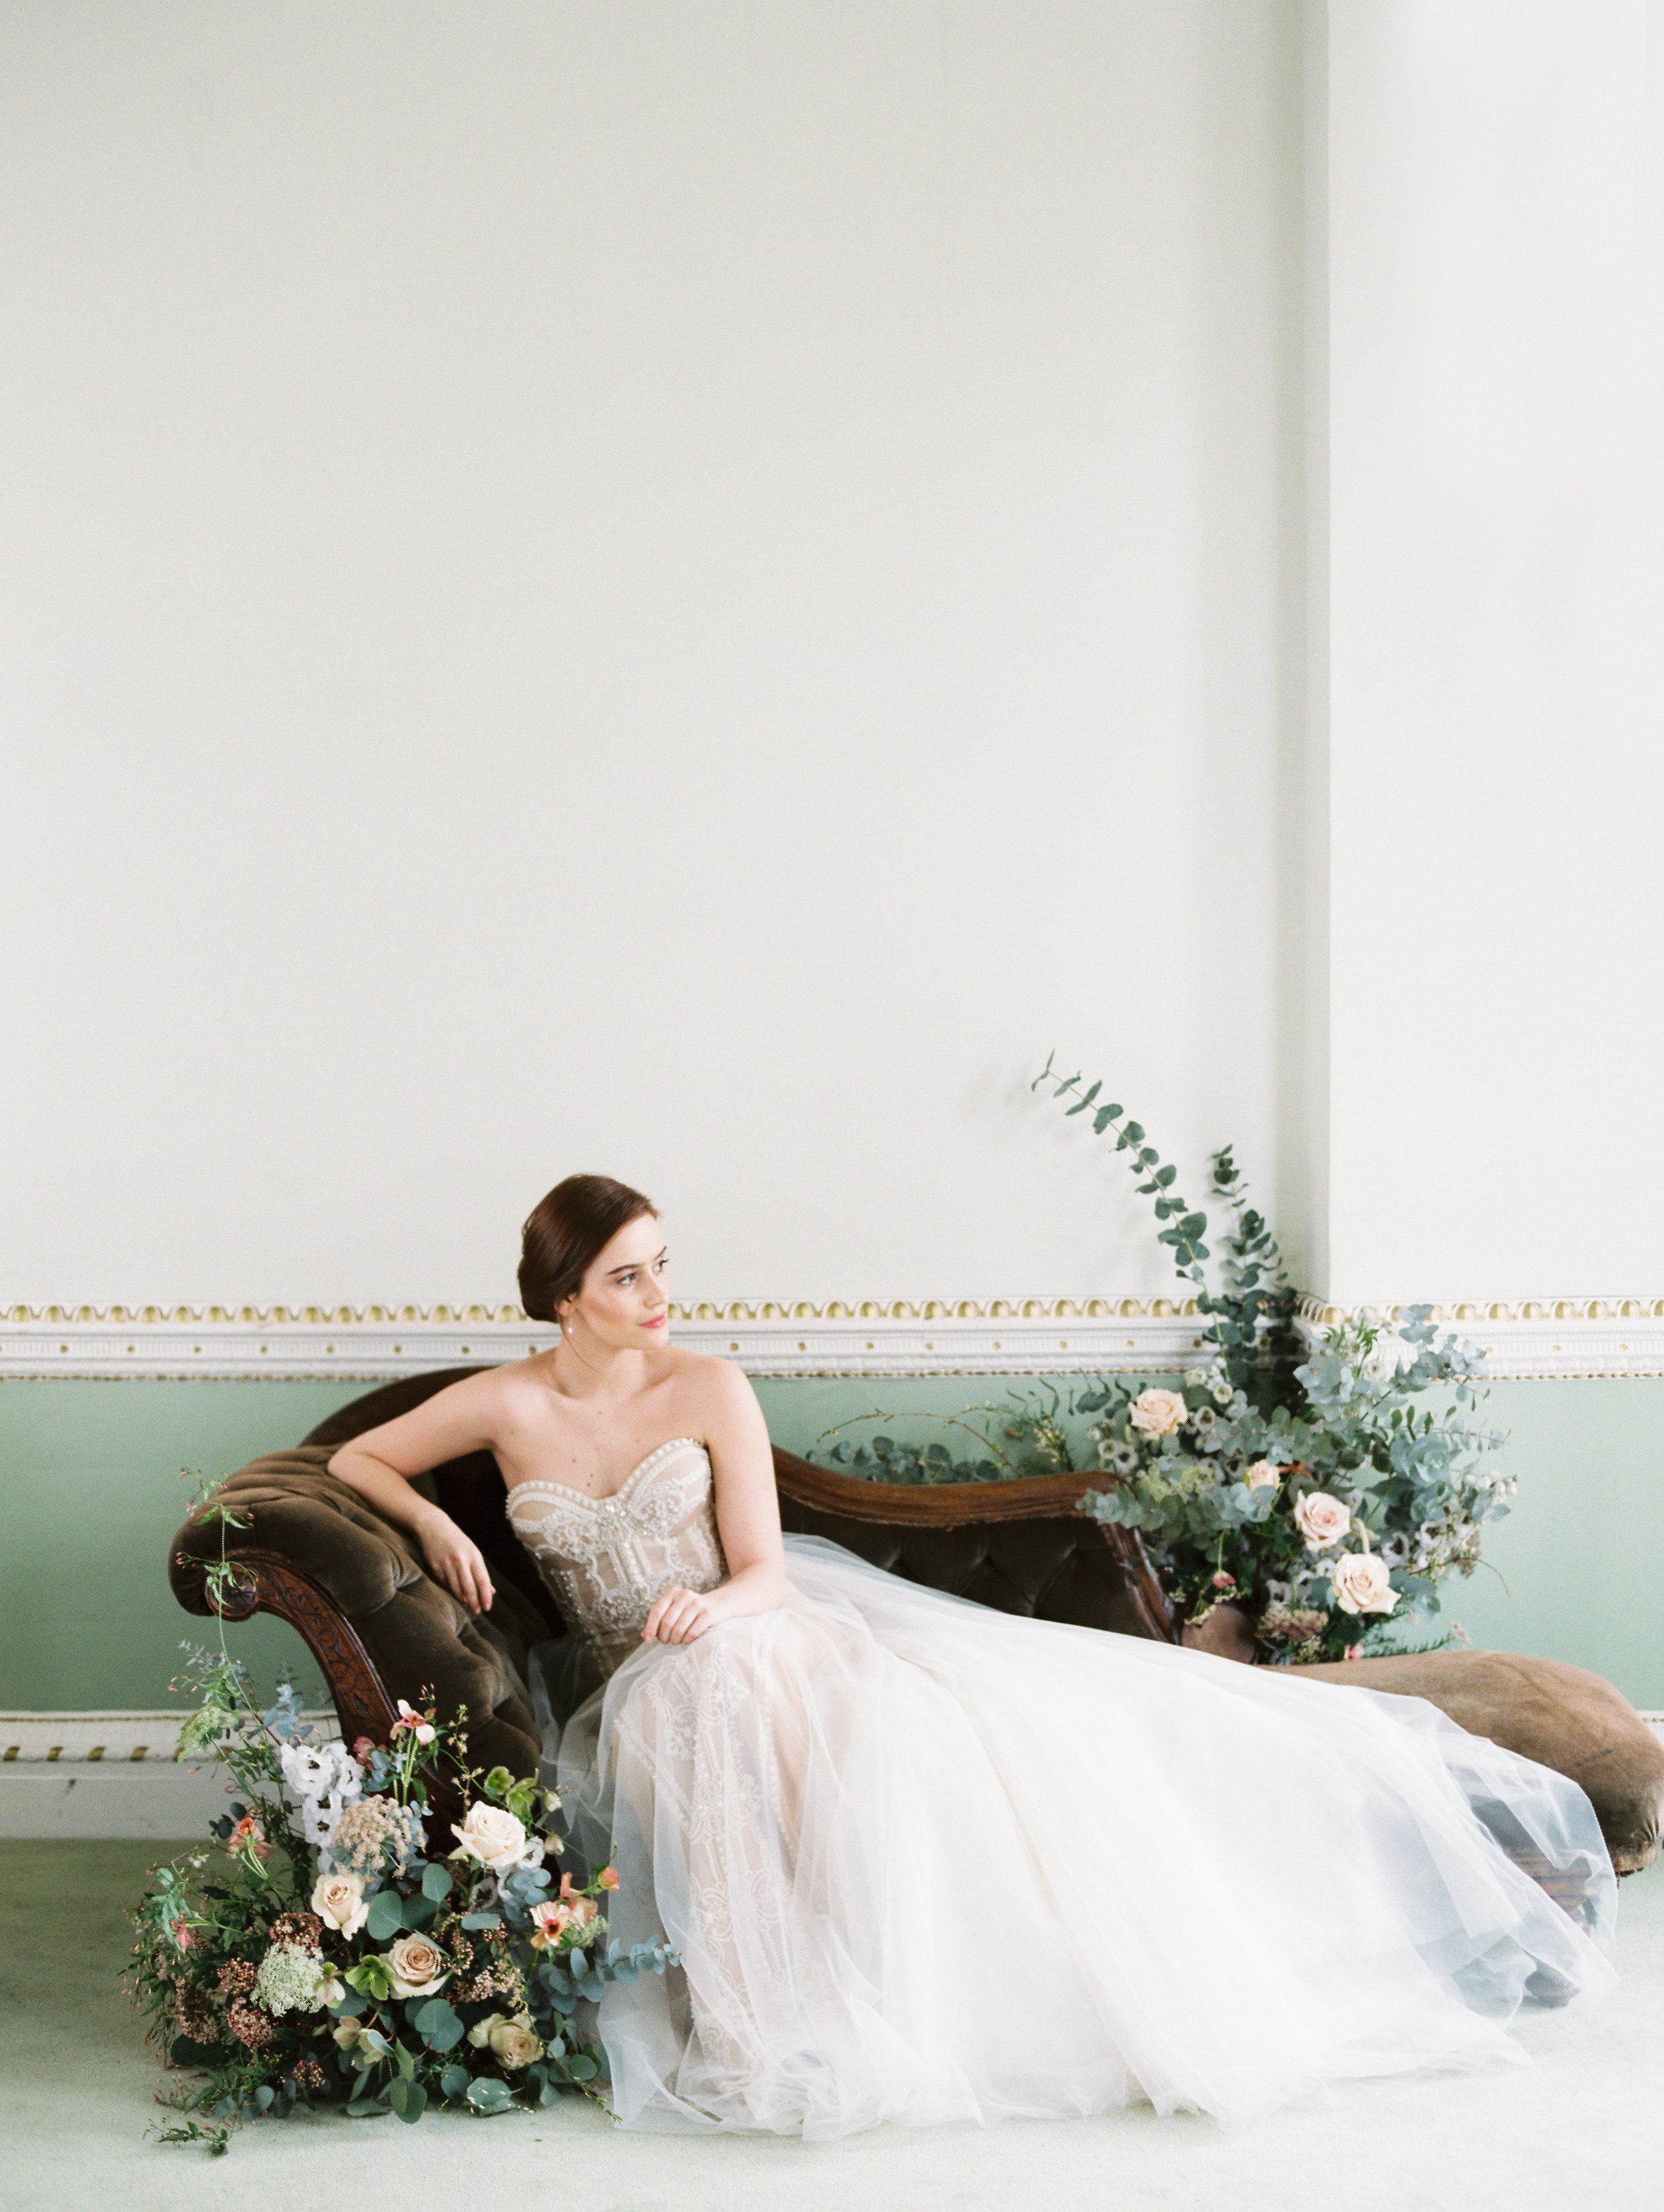 The Timeless Stylist-Elegant and Romantic Wedding Styling-Fine Art Bride on Chaise.jpg